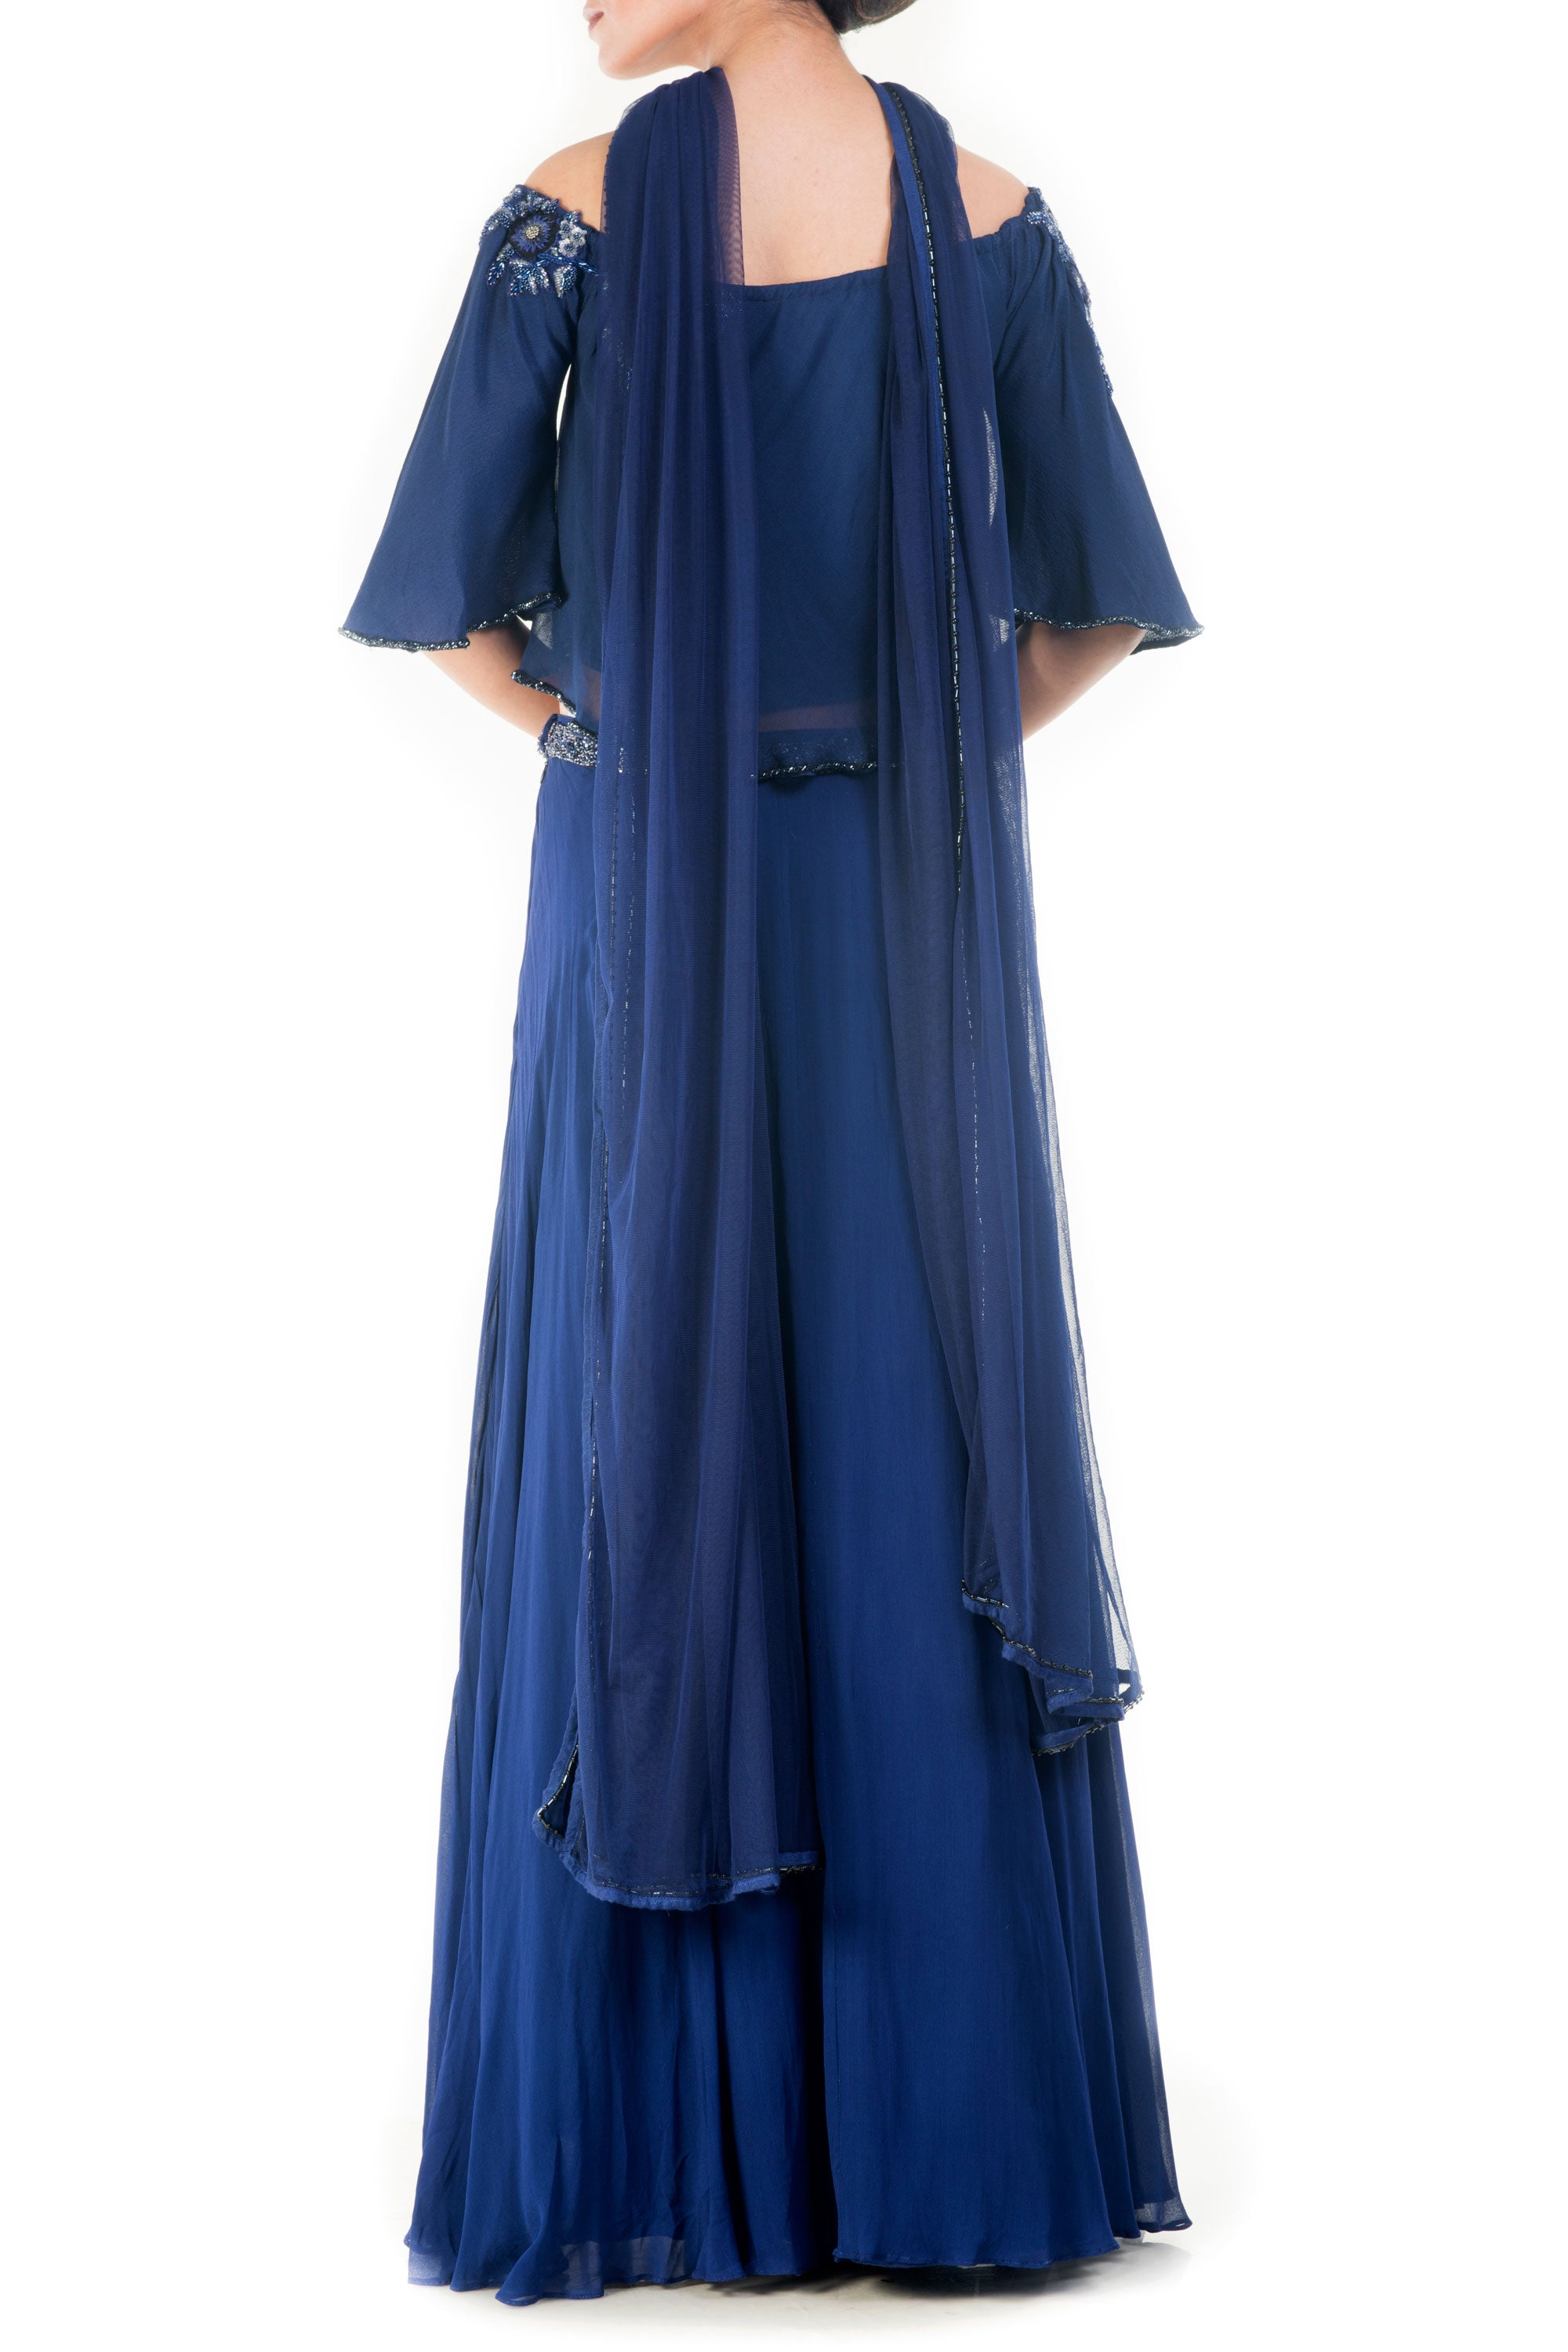 70a3493f61c2fd ... Royal Blue Off Shoulder Cape Lehenga Set Back ...